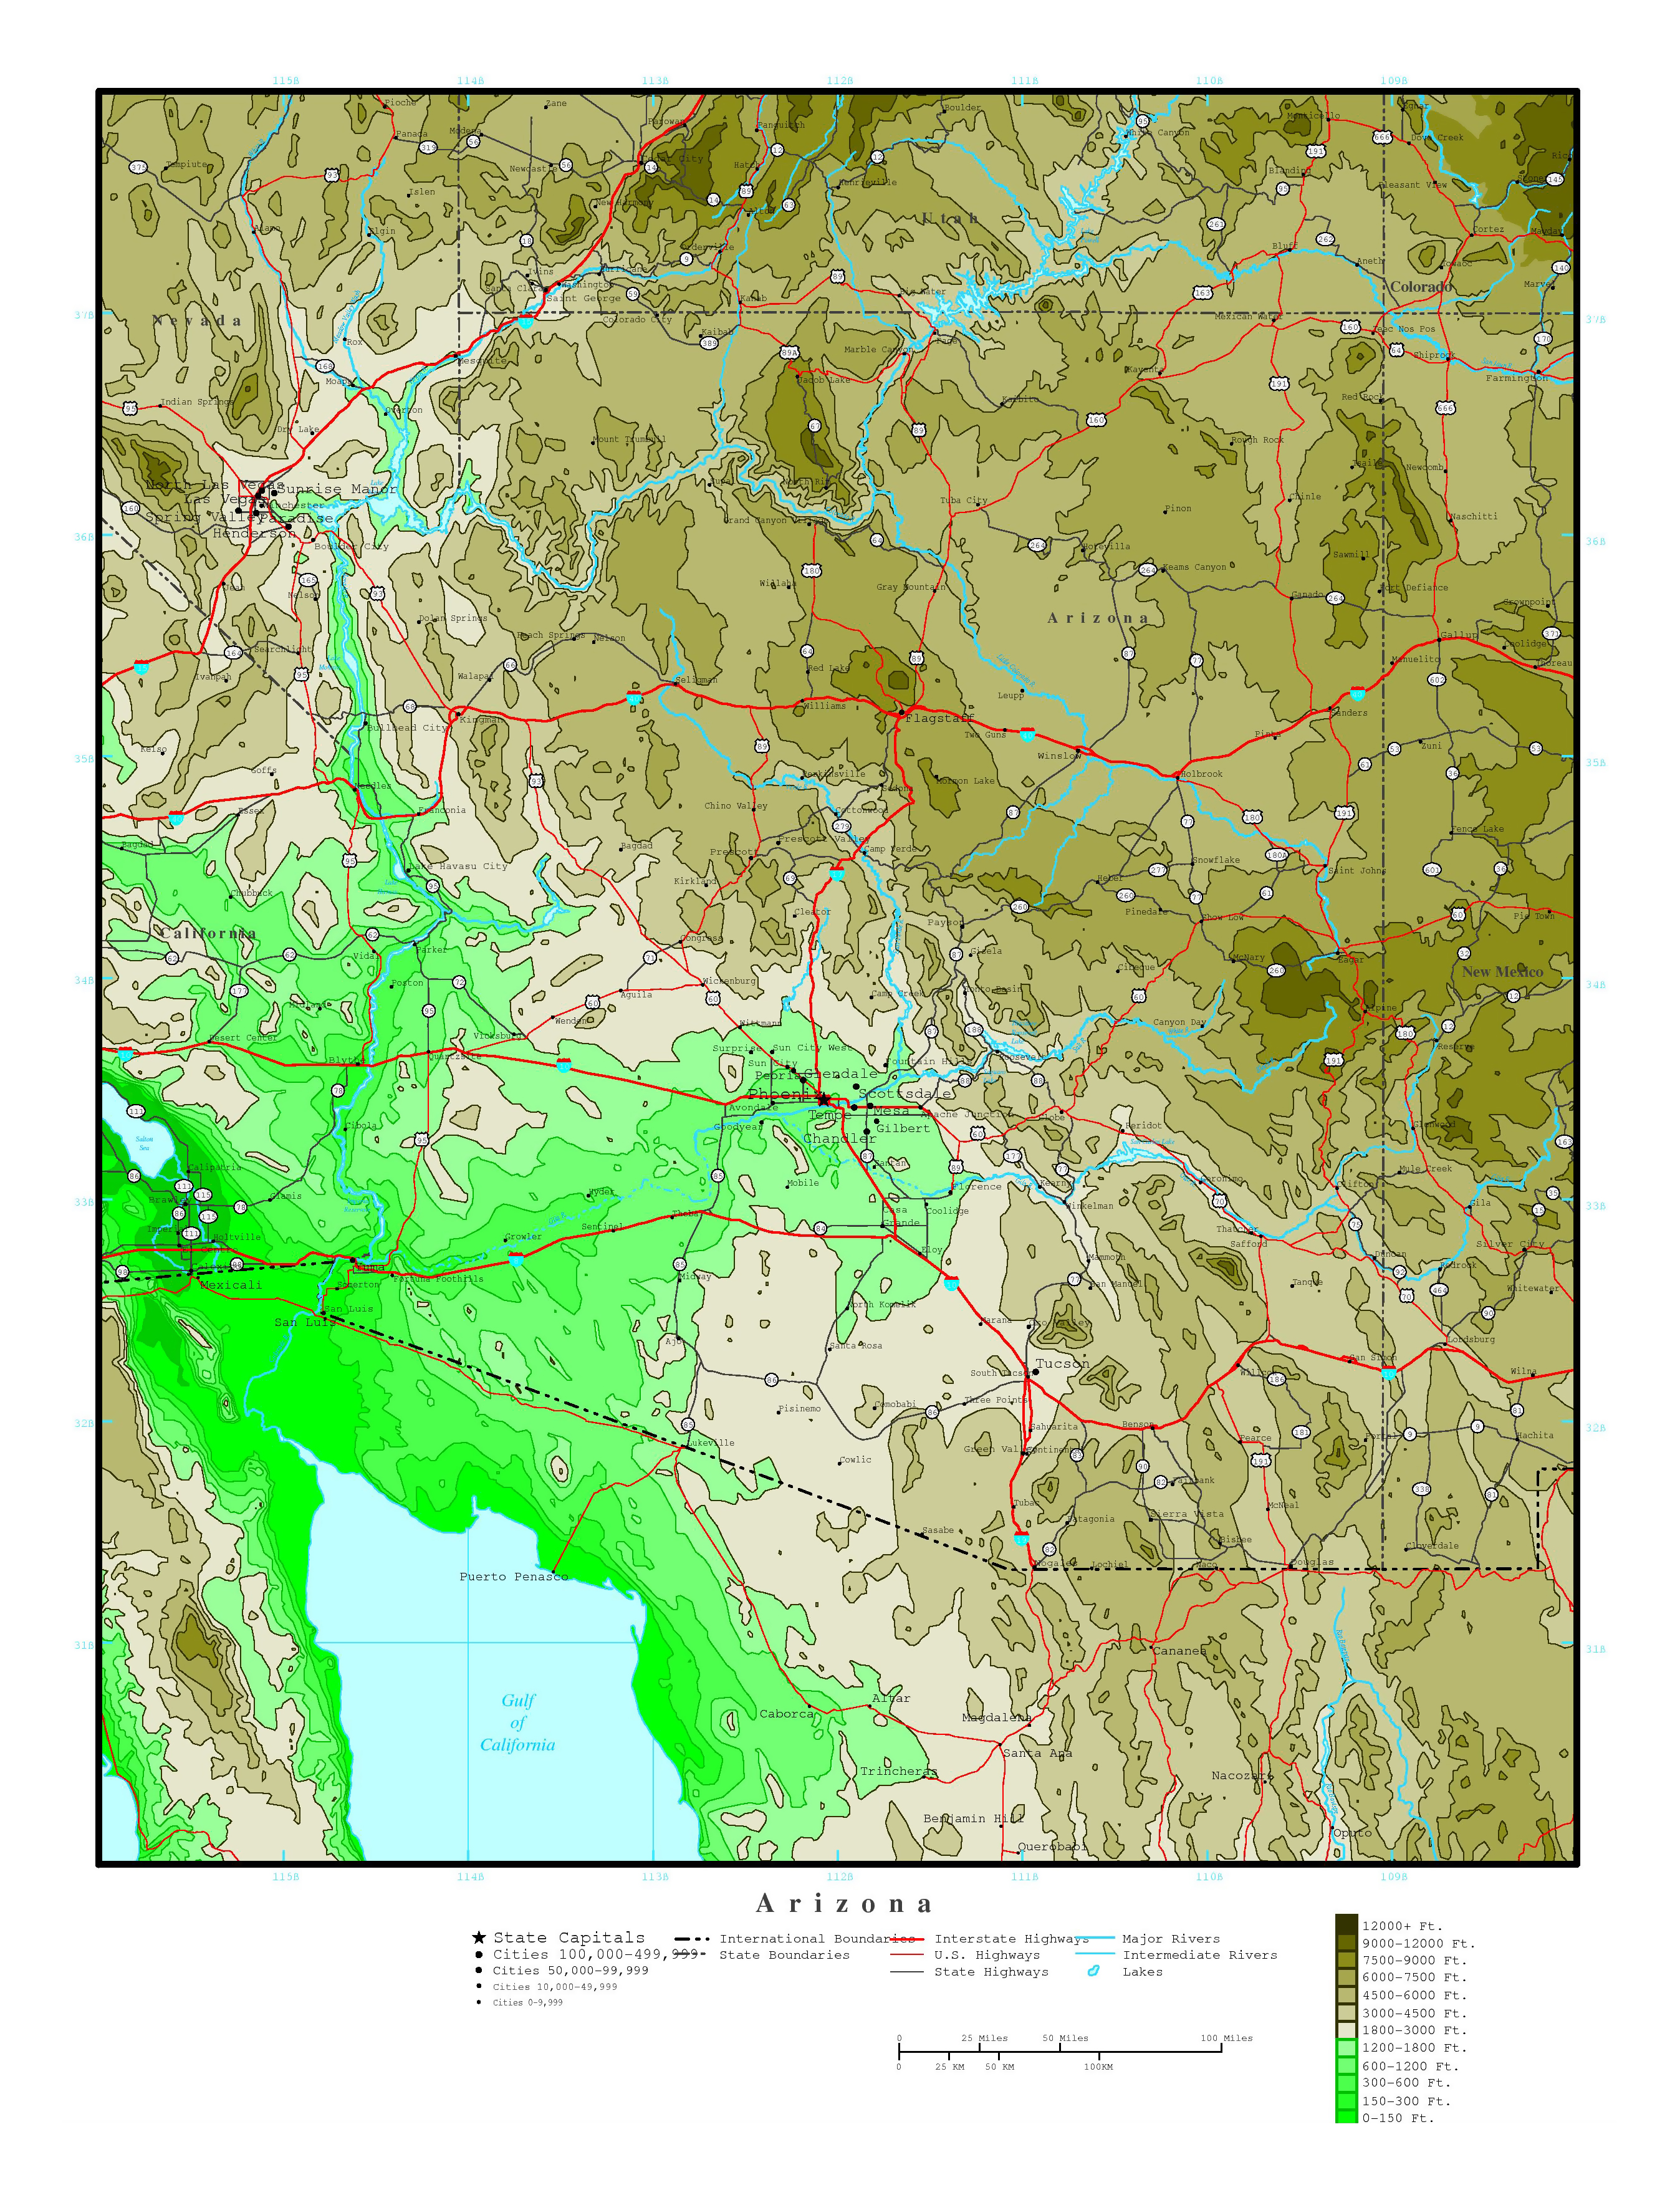 Large Detailed Elevation Map Of Arizona State With Roads Highways - Arizona state in usa map